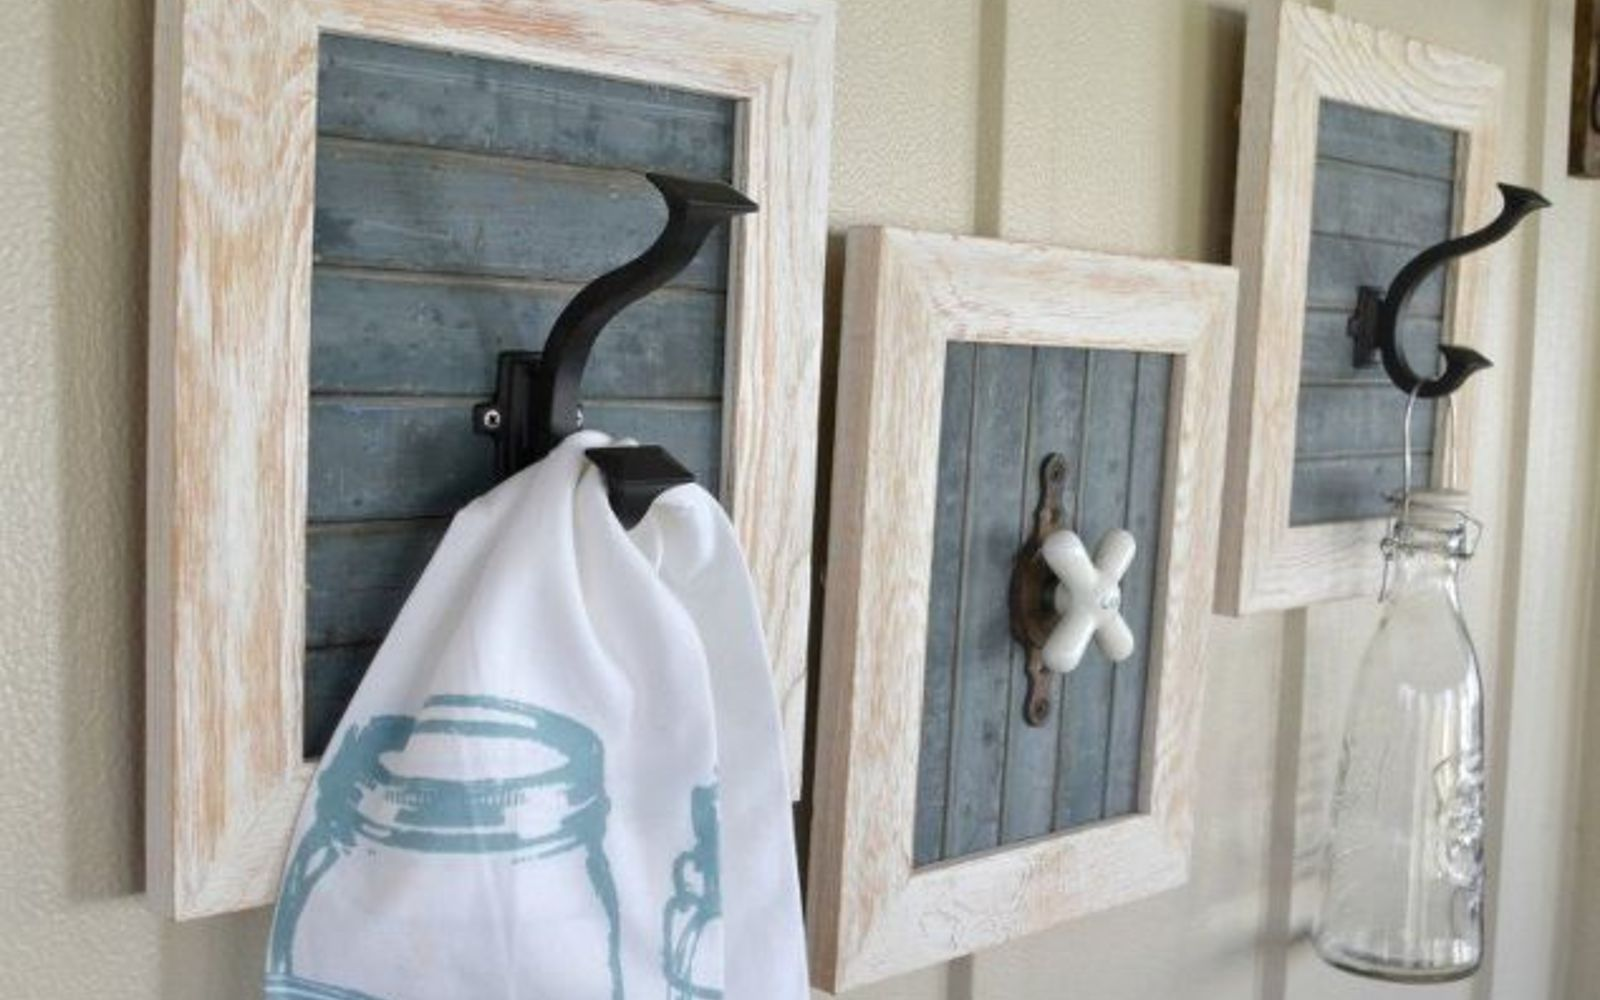 s pamper your guests without spending money 13 ideas , home decor, Add extra coat robe hooks to guest room walls